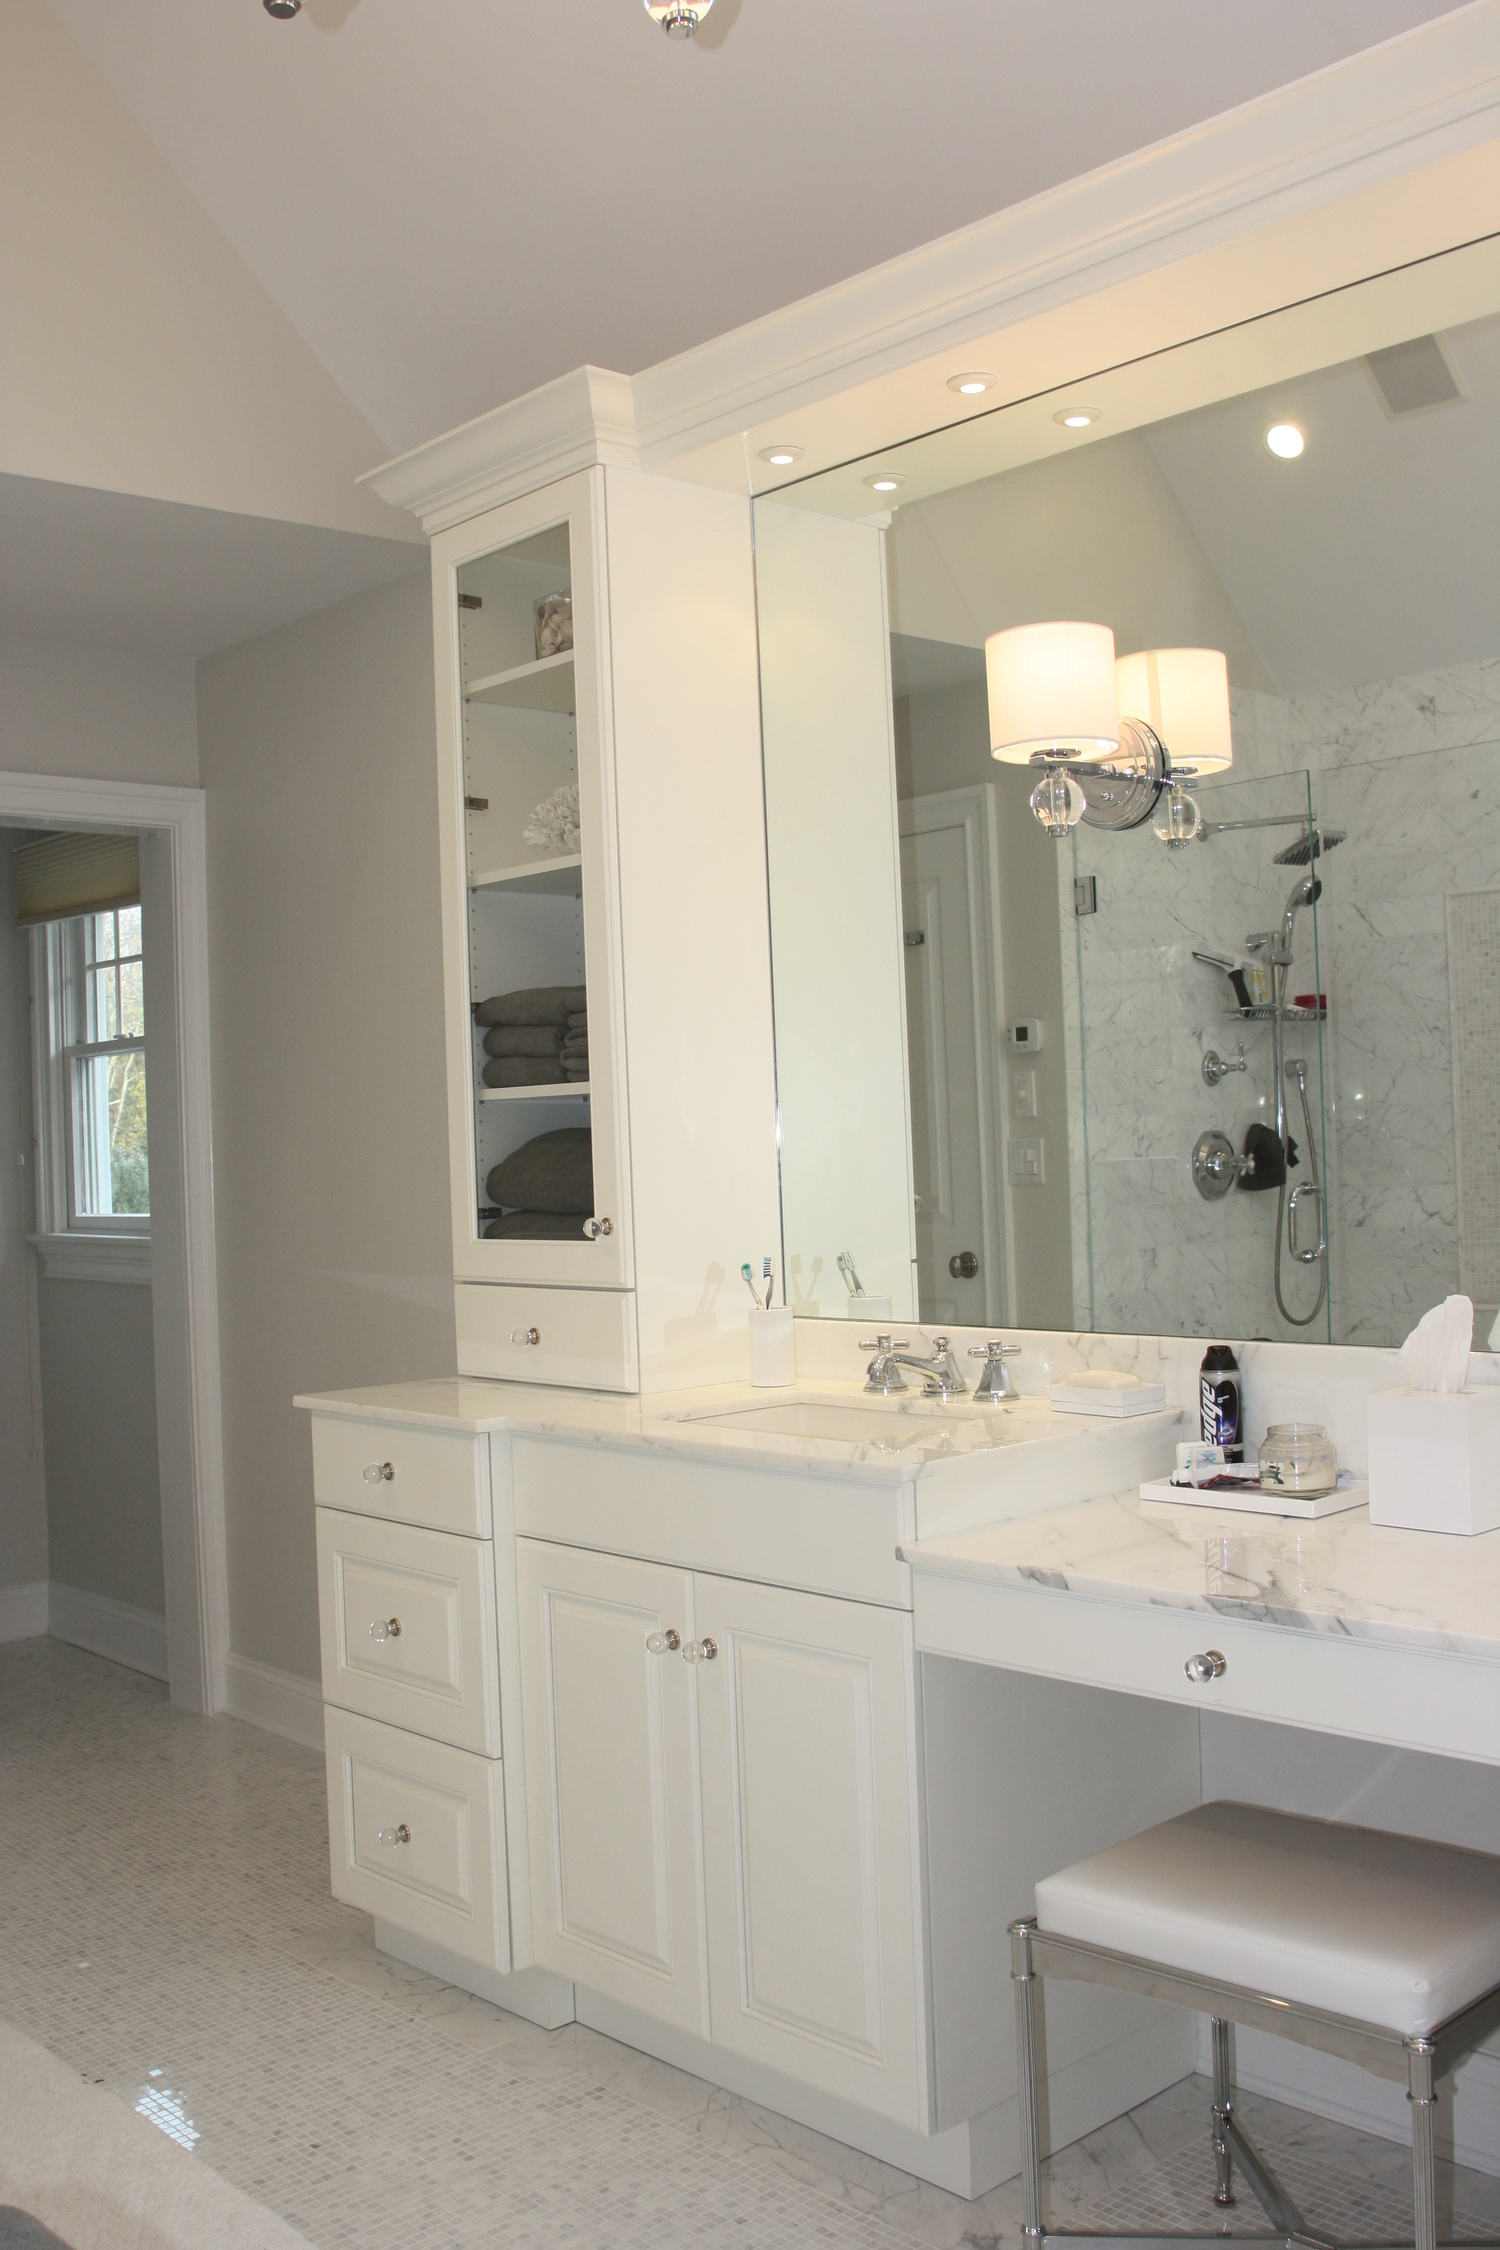 Bathroom Design & Remodel – Projects on Long Island & NYC, NY